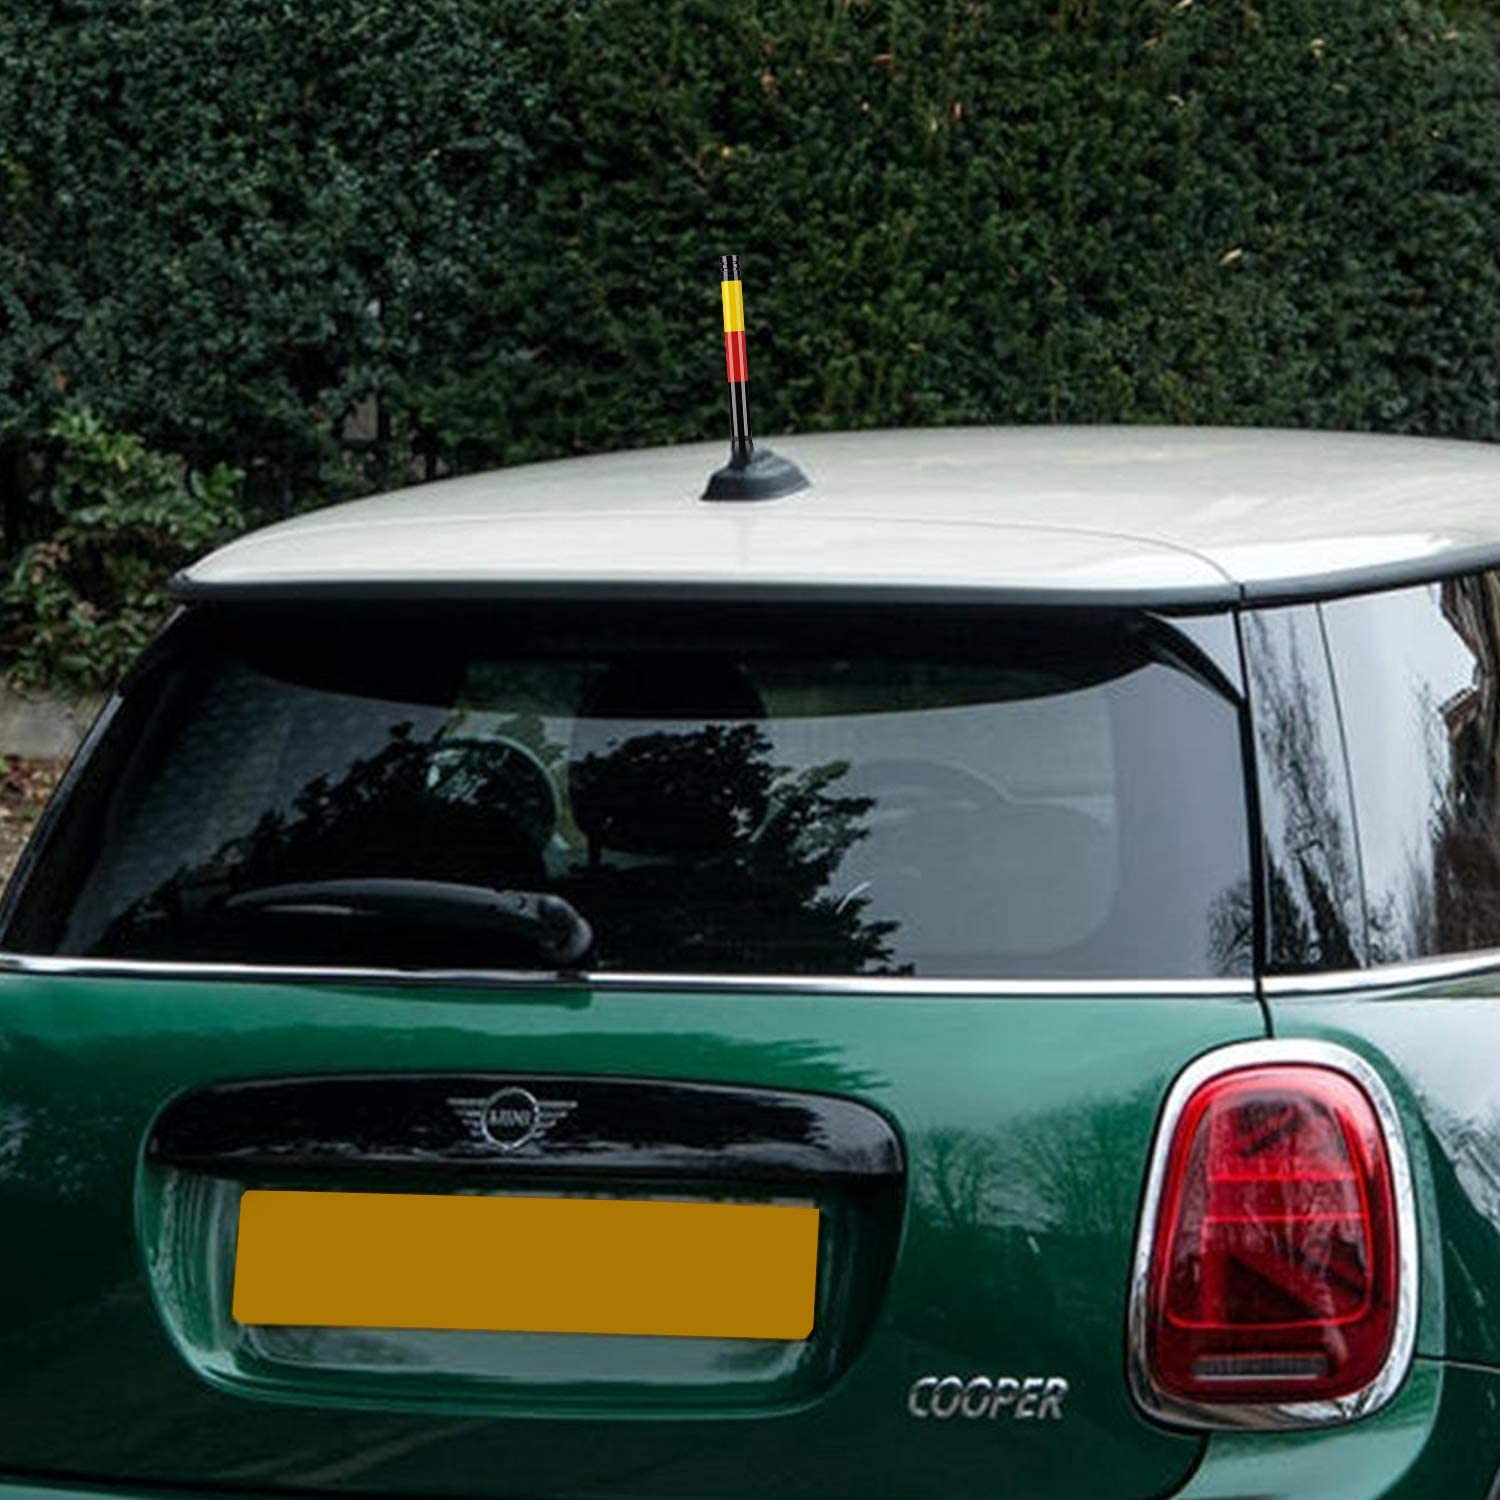 Countryman Checkered Cooper S Convertible Will fit Any Mini Cooper Clubman The Antenna for Mini Cooper All Models Coupe or Roadster